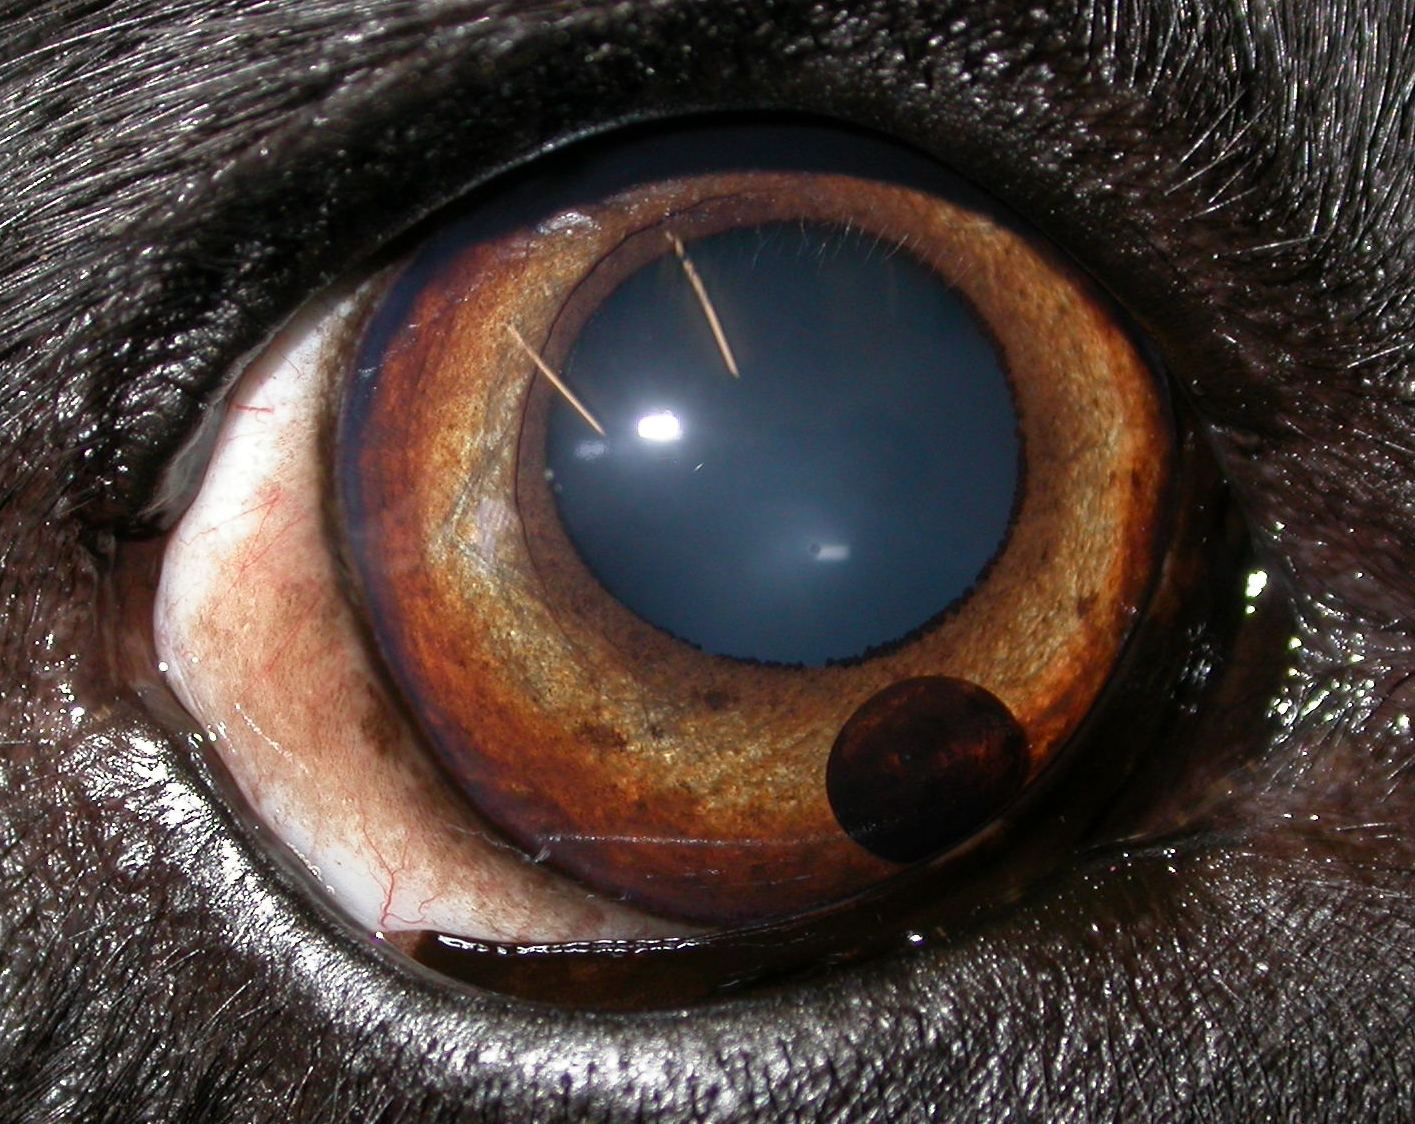 Hi, My Burmese cat has a brown spot next to the pupil in the